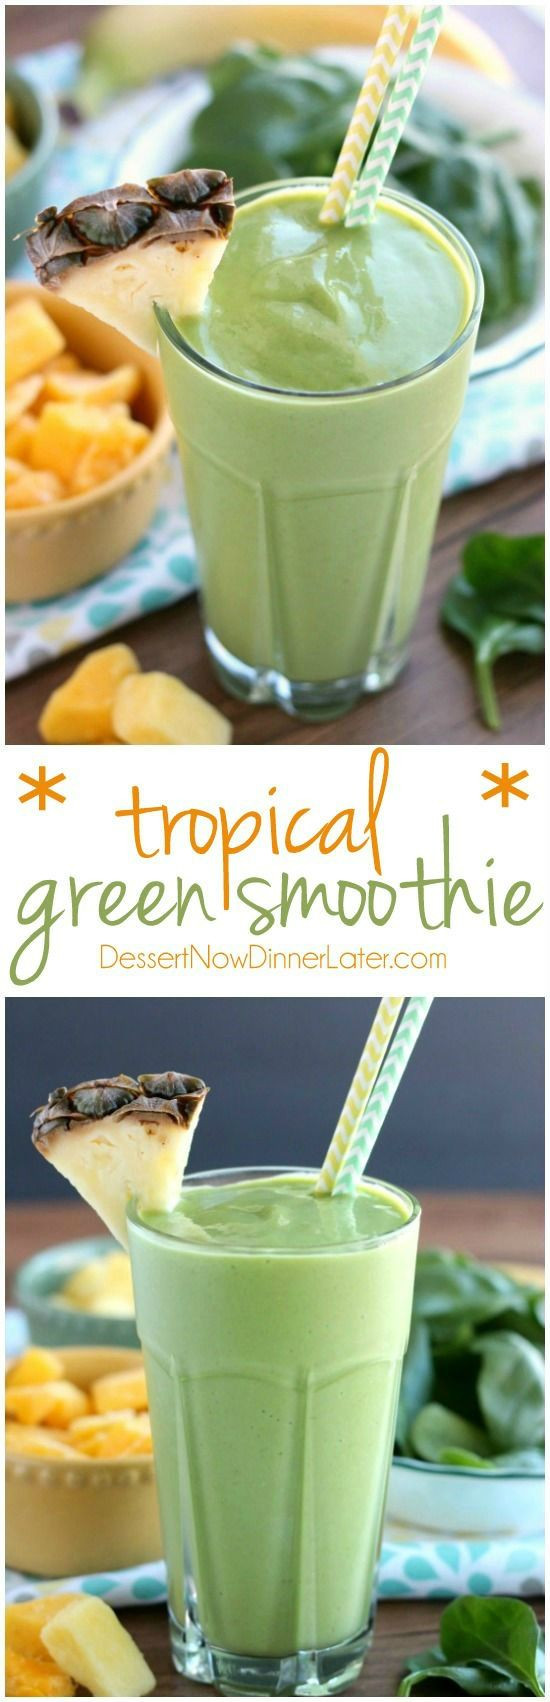 Healthy Smoothie Recipes With Yogurt  Best 25 Tropical smoothie recipes ideas on Pinterest